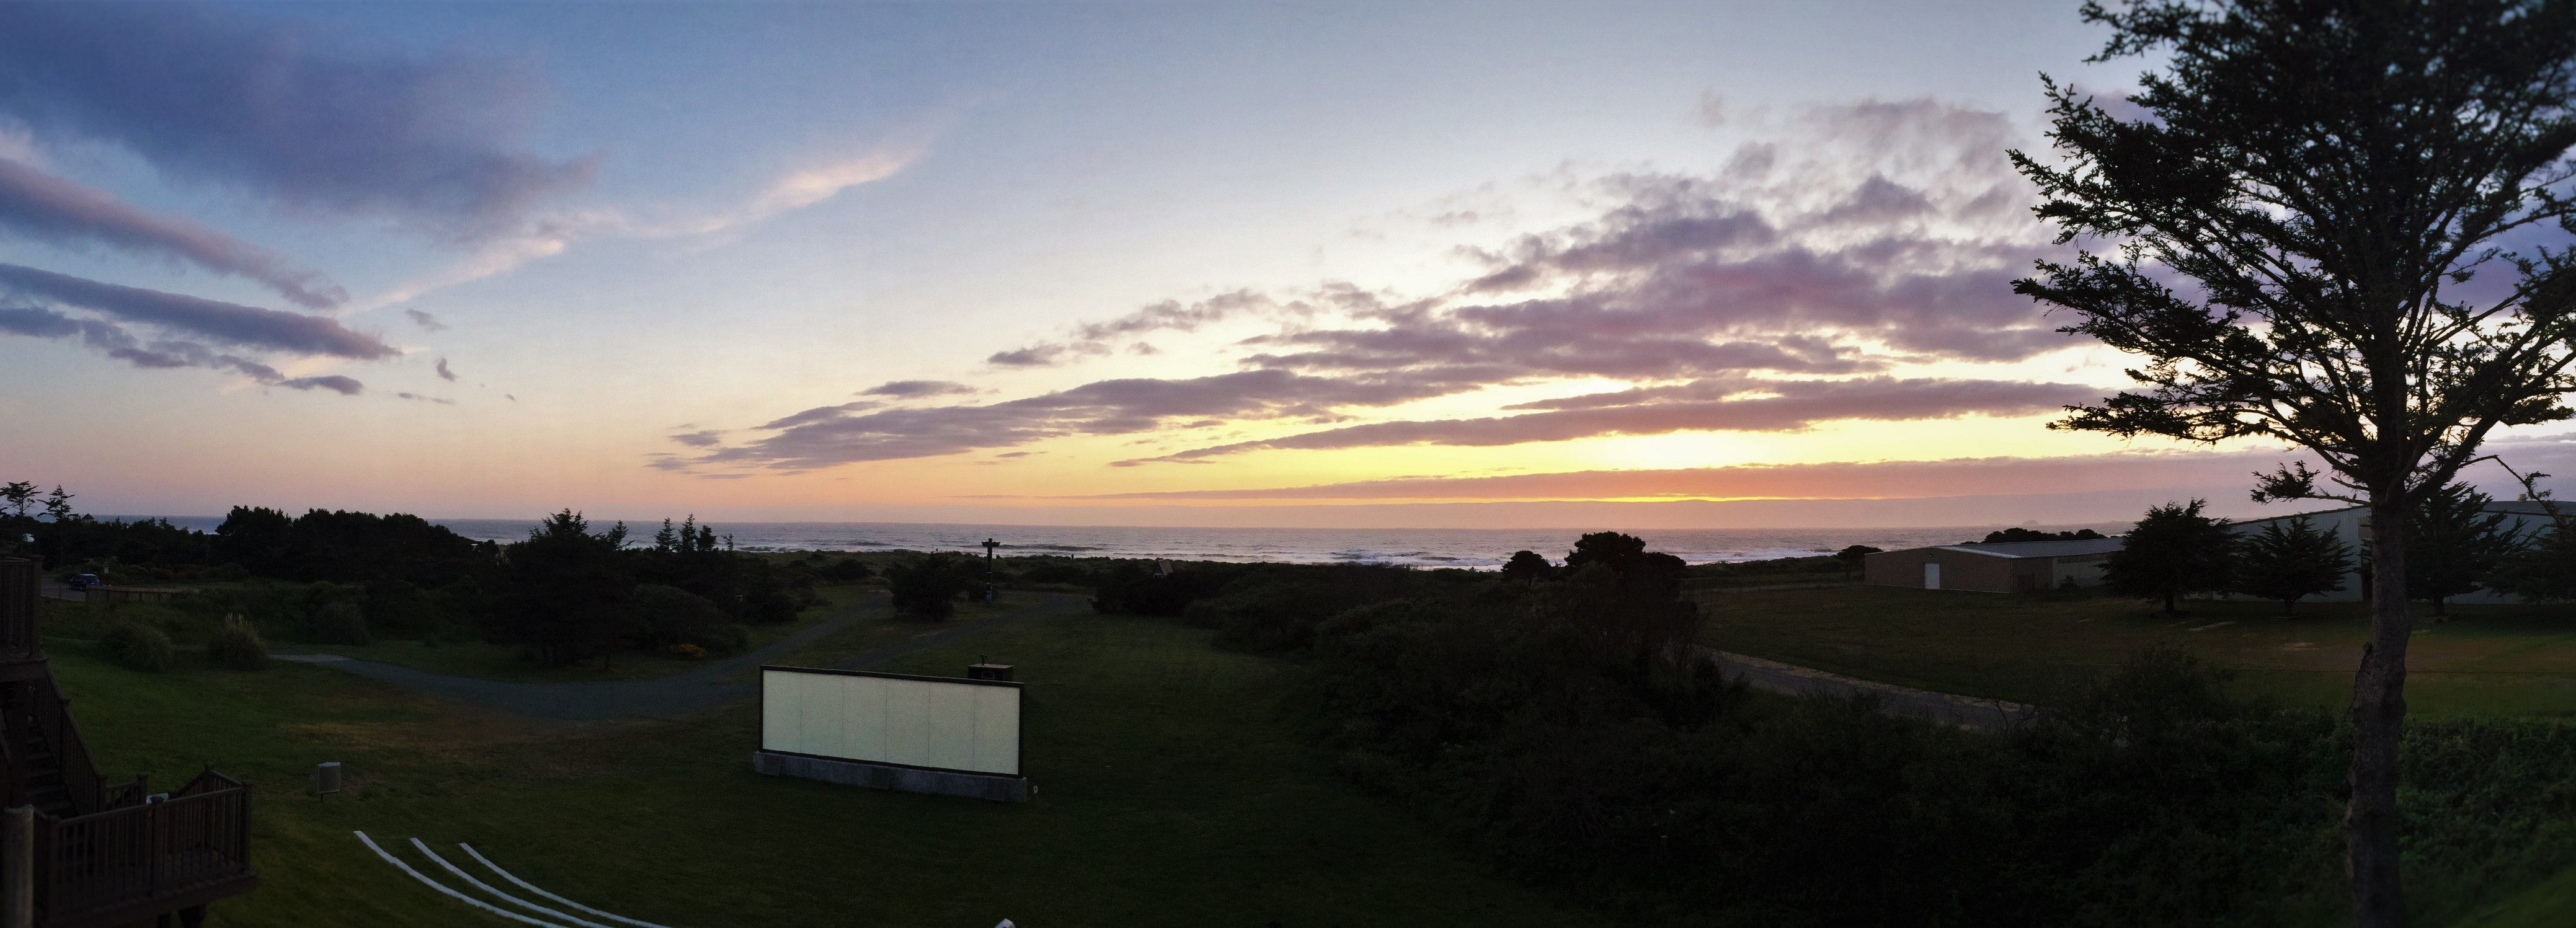 Pacific Reef Hotel sunset header